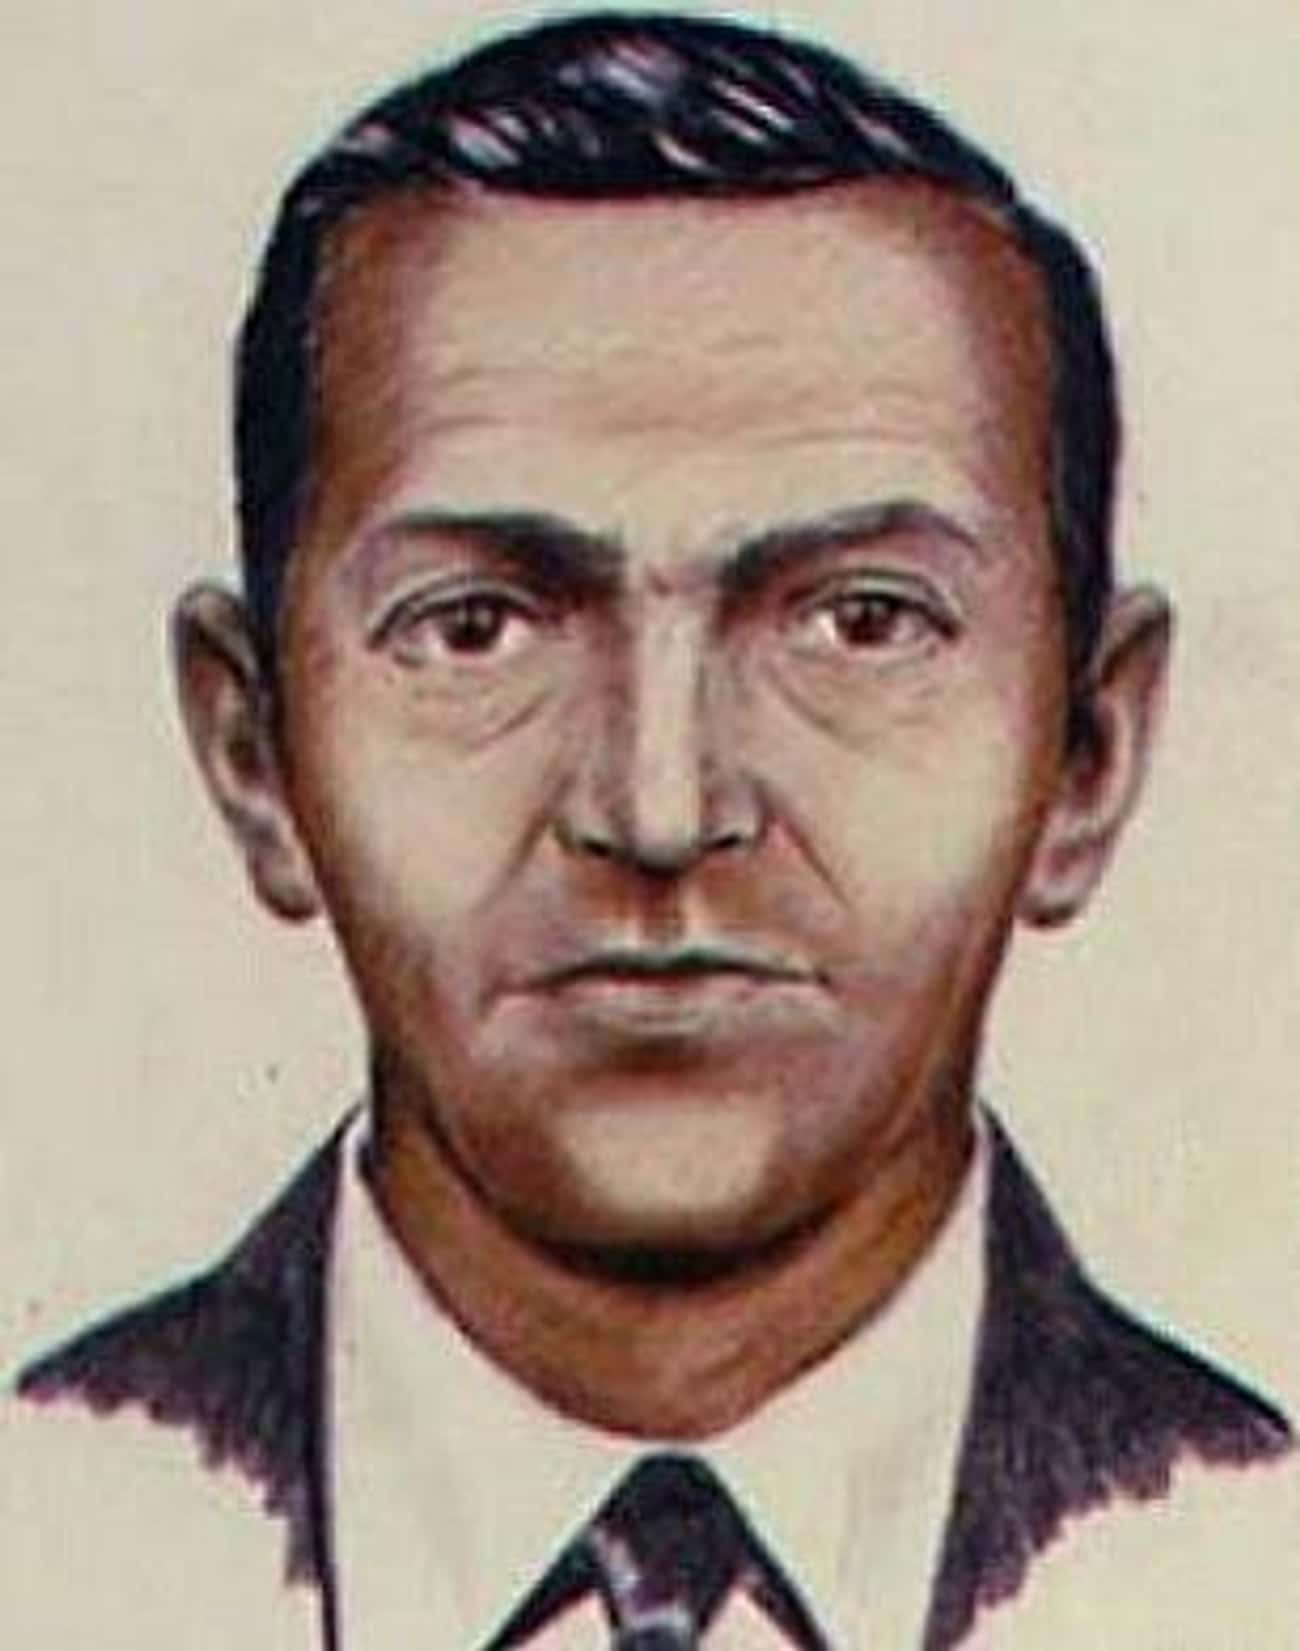 Hijacker D.B. Cooper Disappear is listed (or ranked) 1 on the list 10 Unsolved Crimes and Disappearances That Happened on Thanksgiving